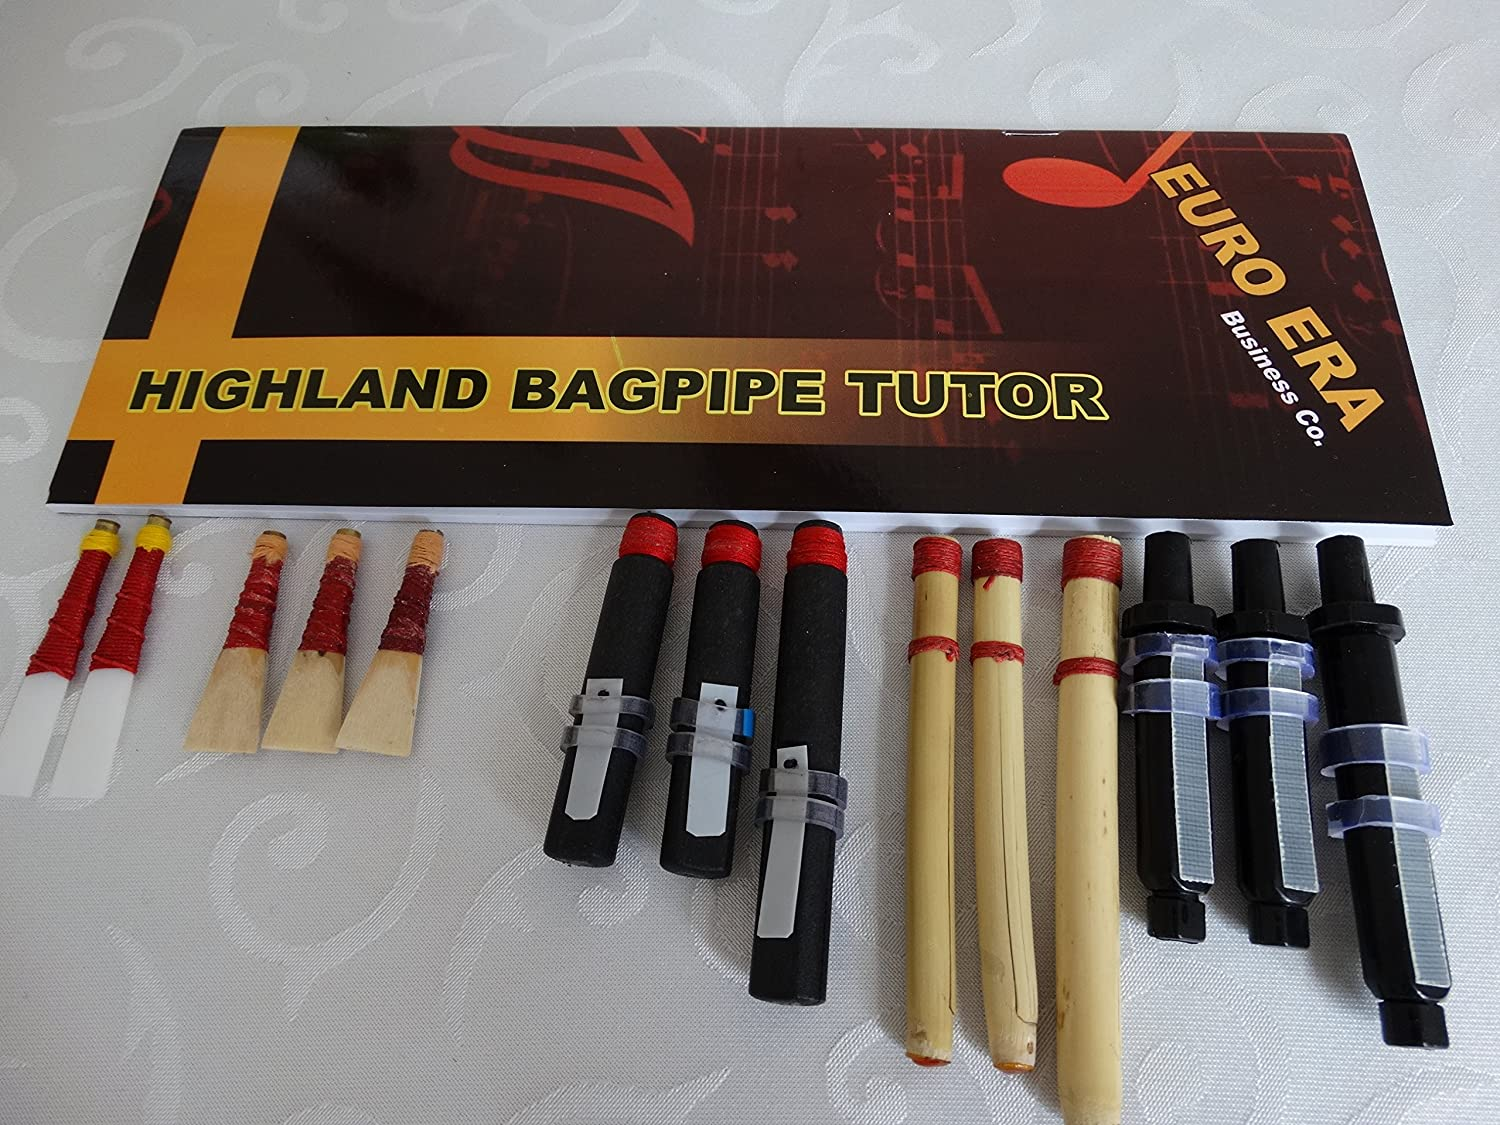 Scottish Bagpipe Drone & Reeds Set with Tutor Book Euro Era Business erb 49